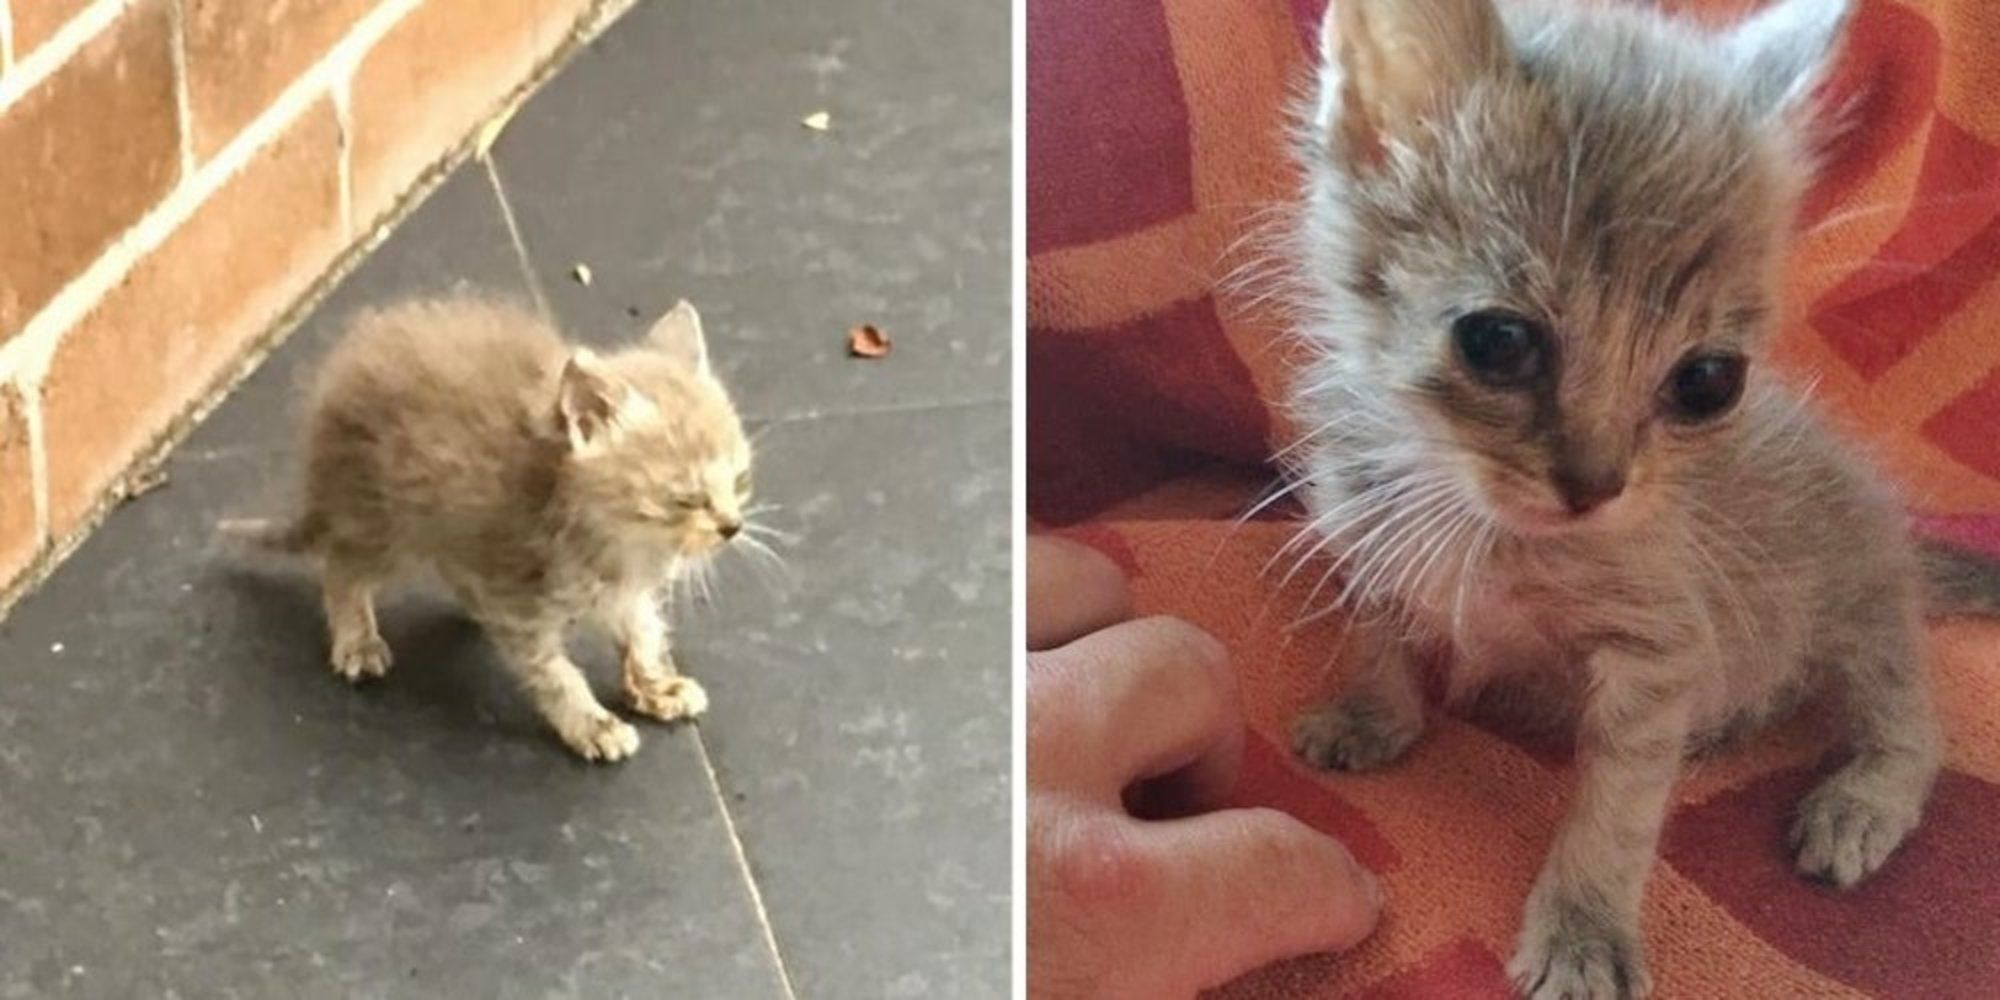 A Scrawny 4 Week Old Kitten Was Found On The Streets Of New South Wales Australia A Man Took The Kitty Off The Sidew Tiny Kitten Frontline Plus For Cats Cats